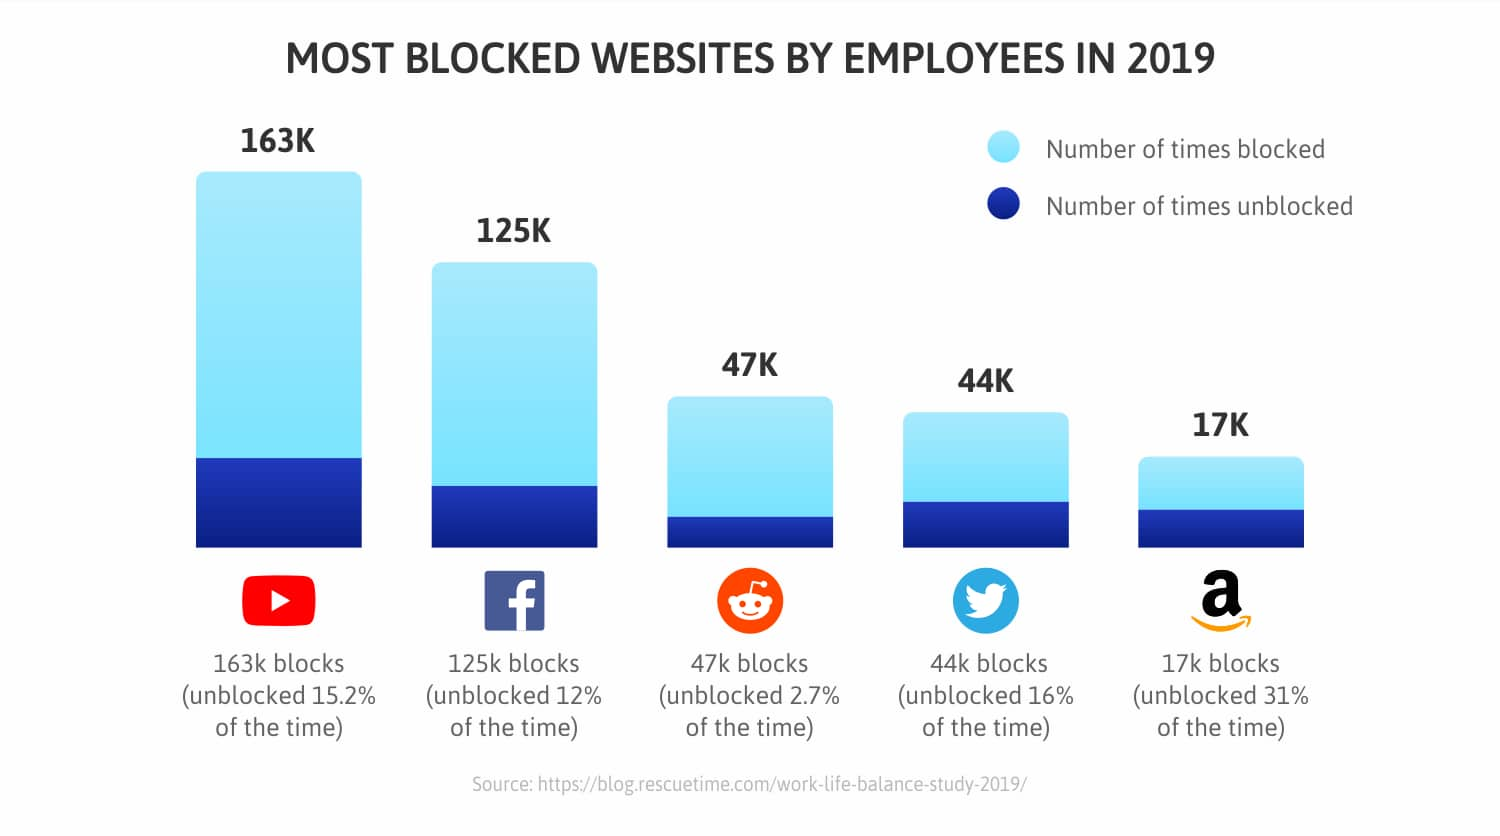 Most-blocked-websites-by-employees-in-2019